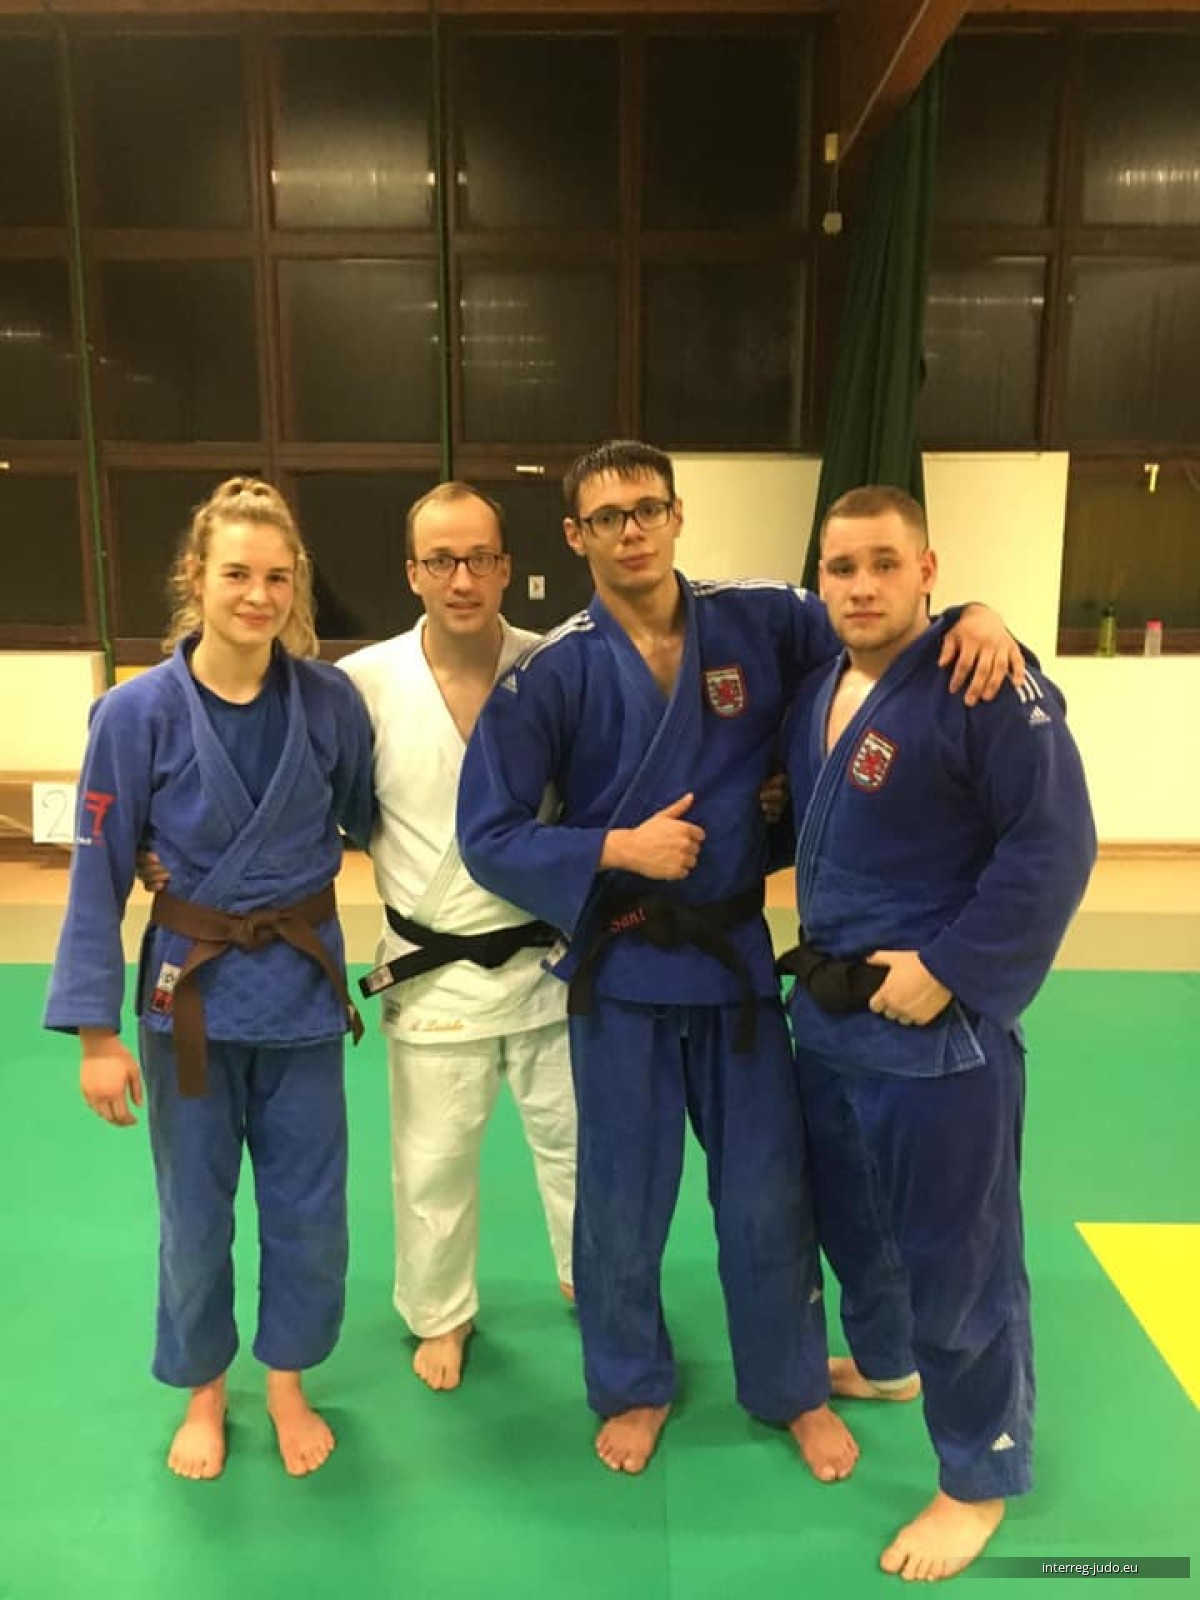 Interreg Judo Training Strasbourg - 29.01.2019